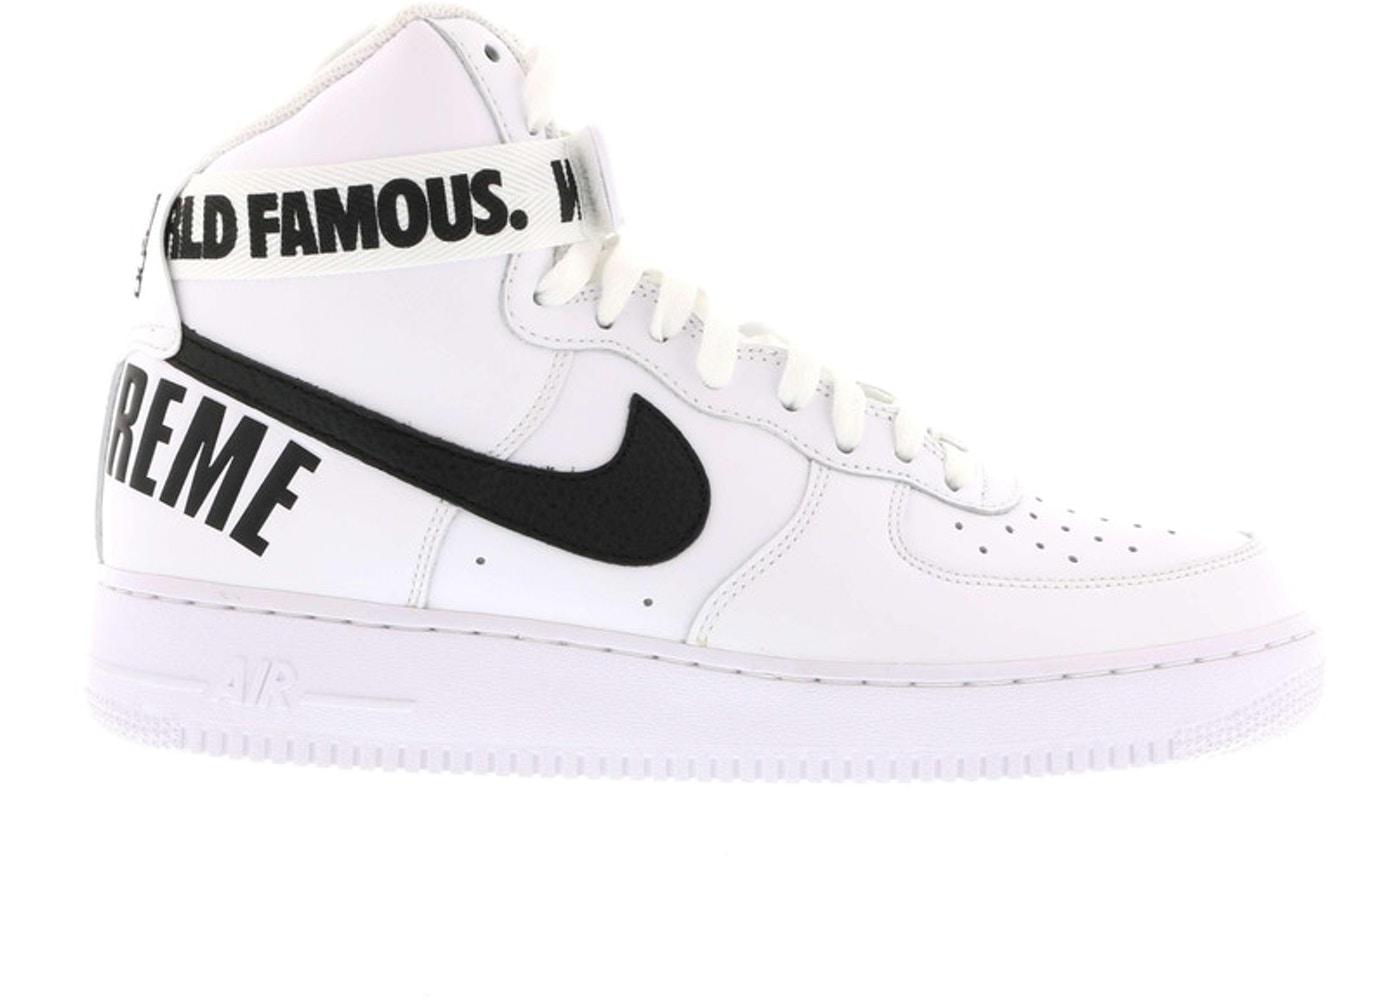 Nike Air Force 1 Shoes - Average Sale Price 134a57f596